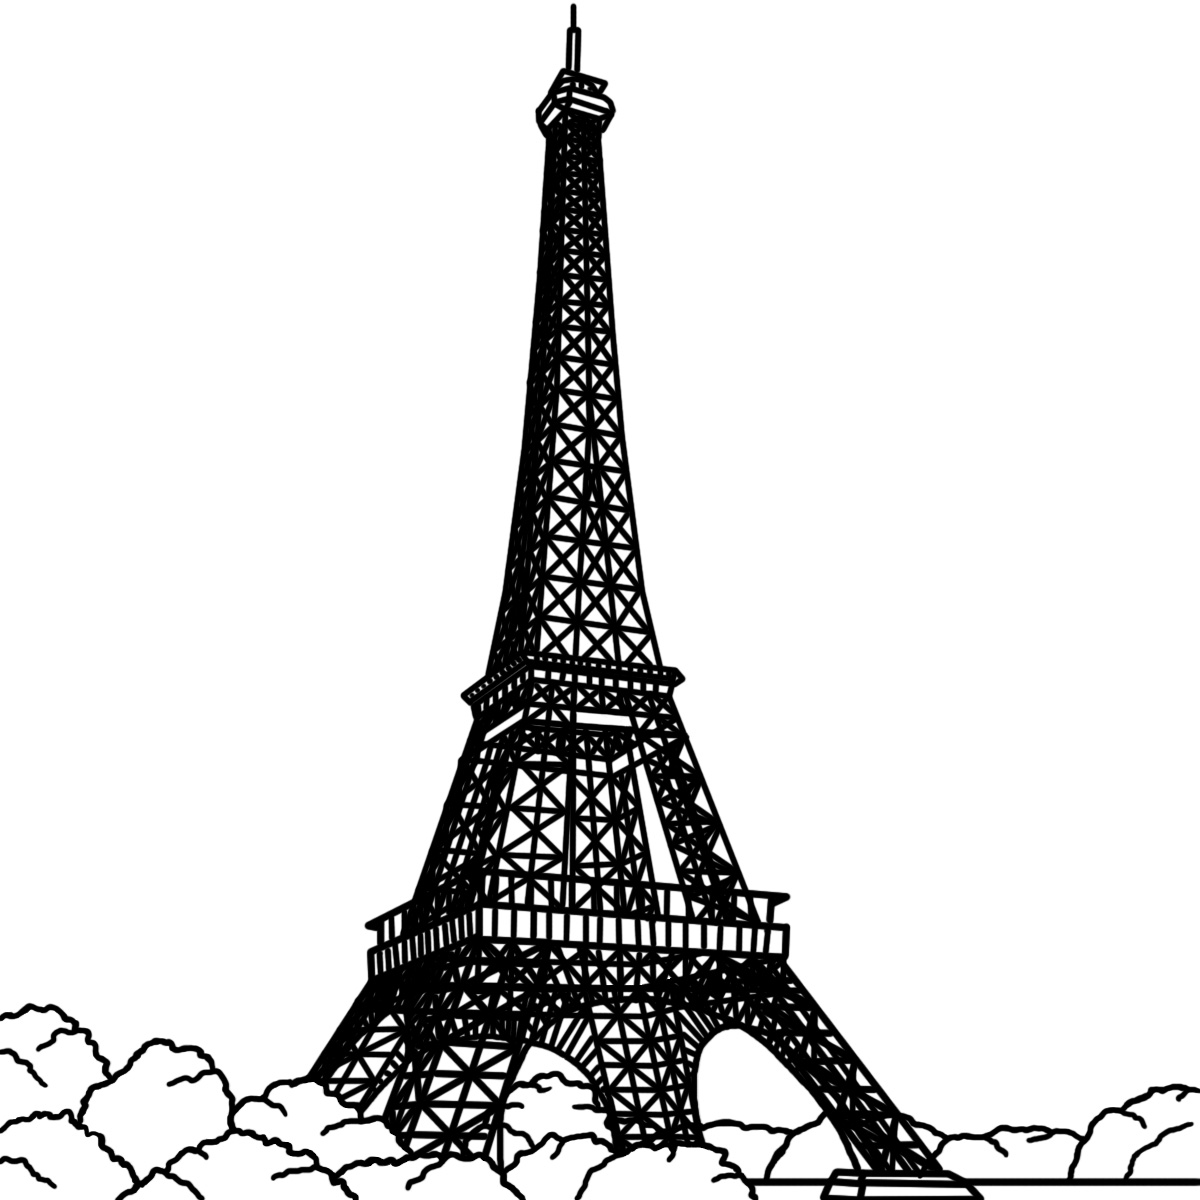 Black And White Eiffel Tower Drawing - ClipArt Best